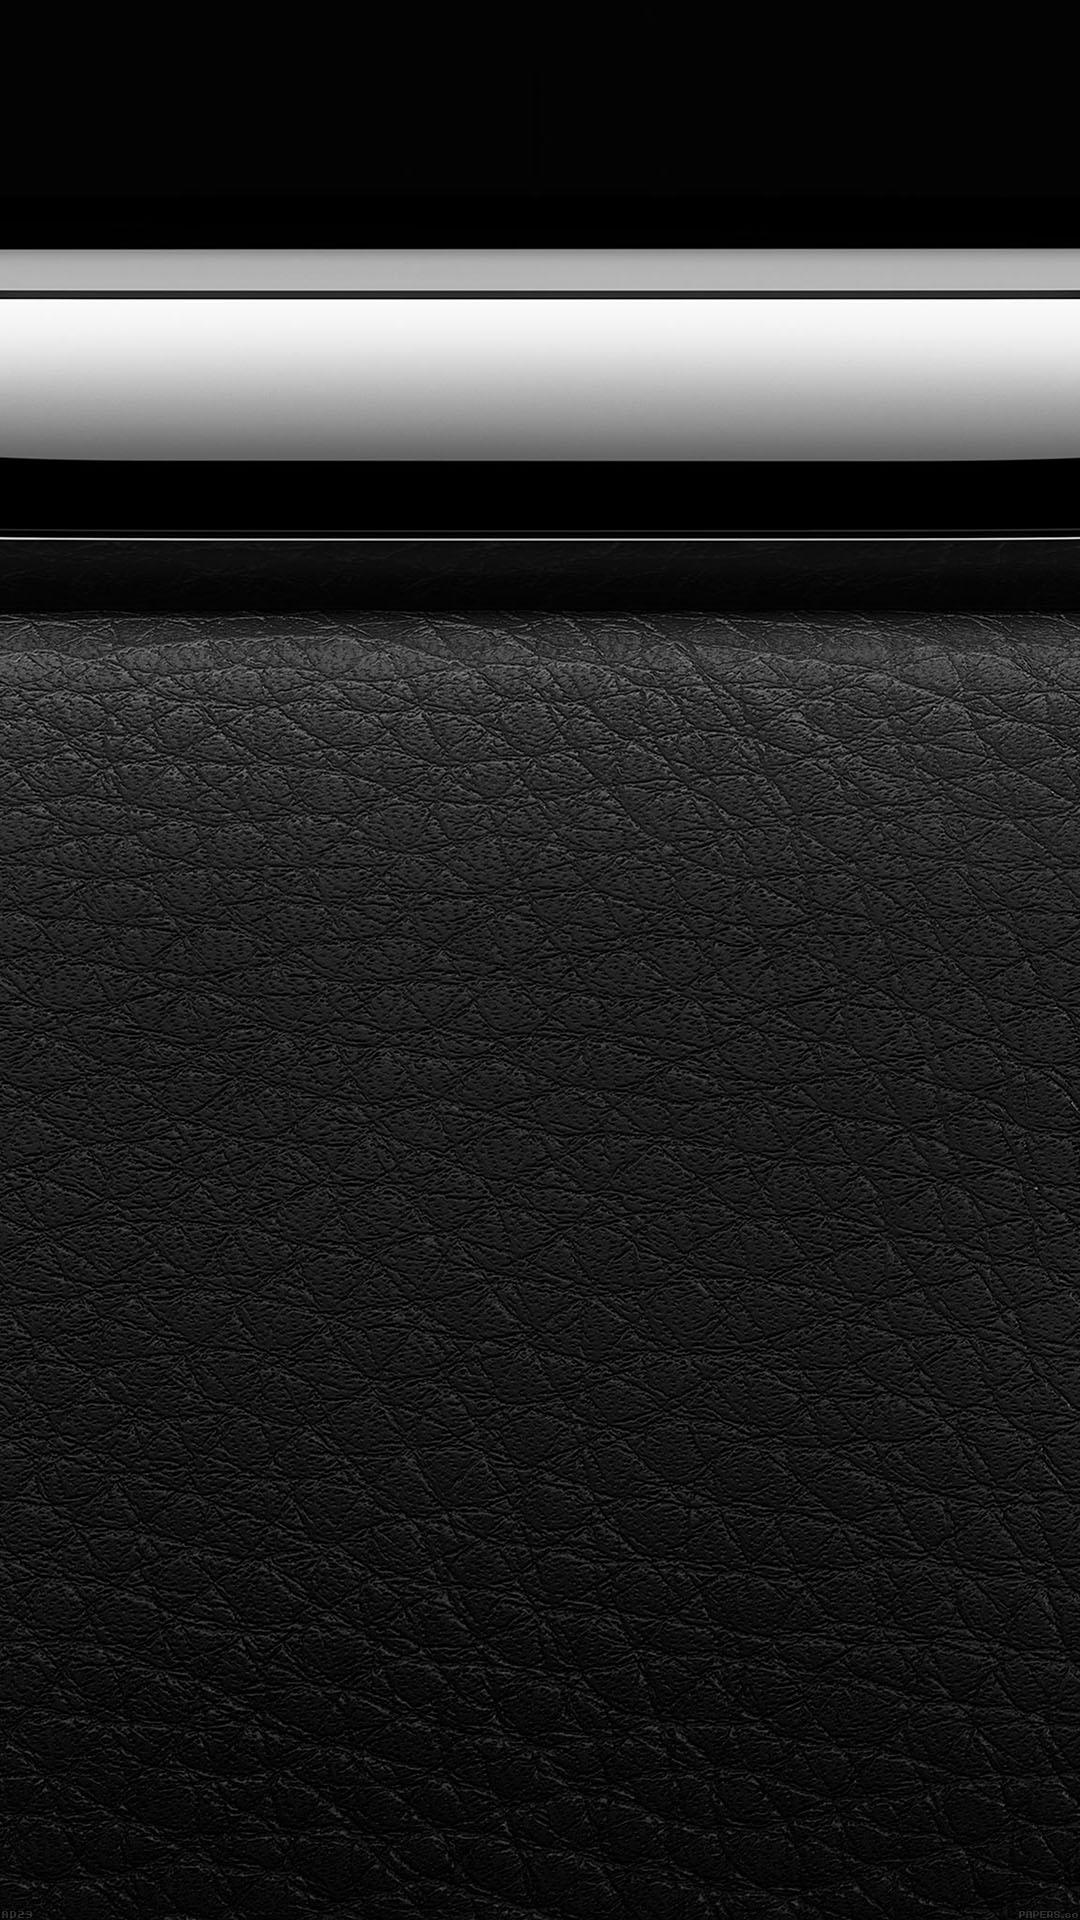 Apple Watch Leather Android wallpaper